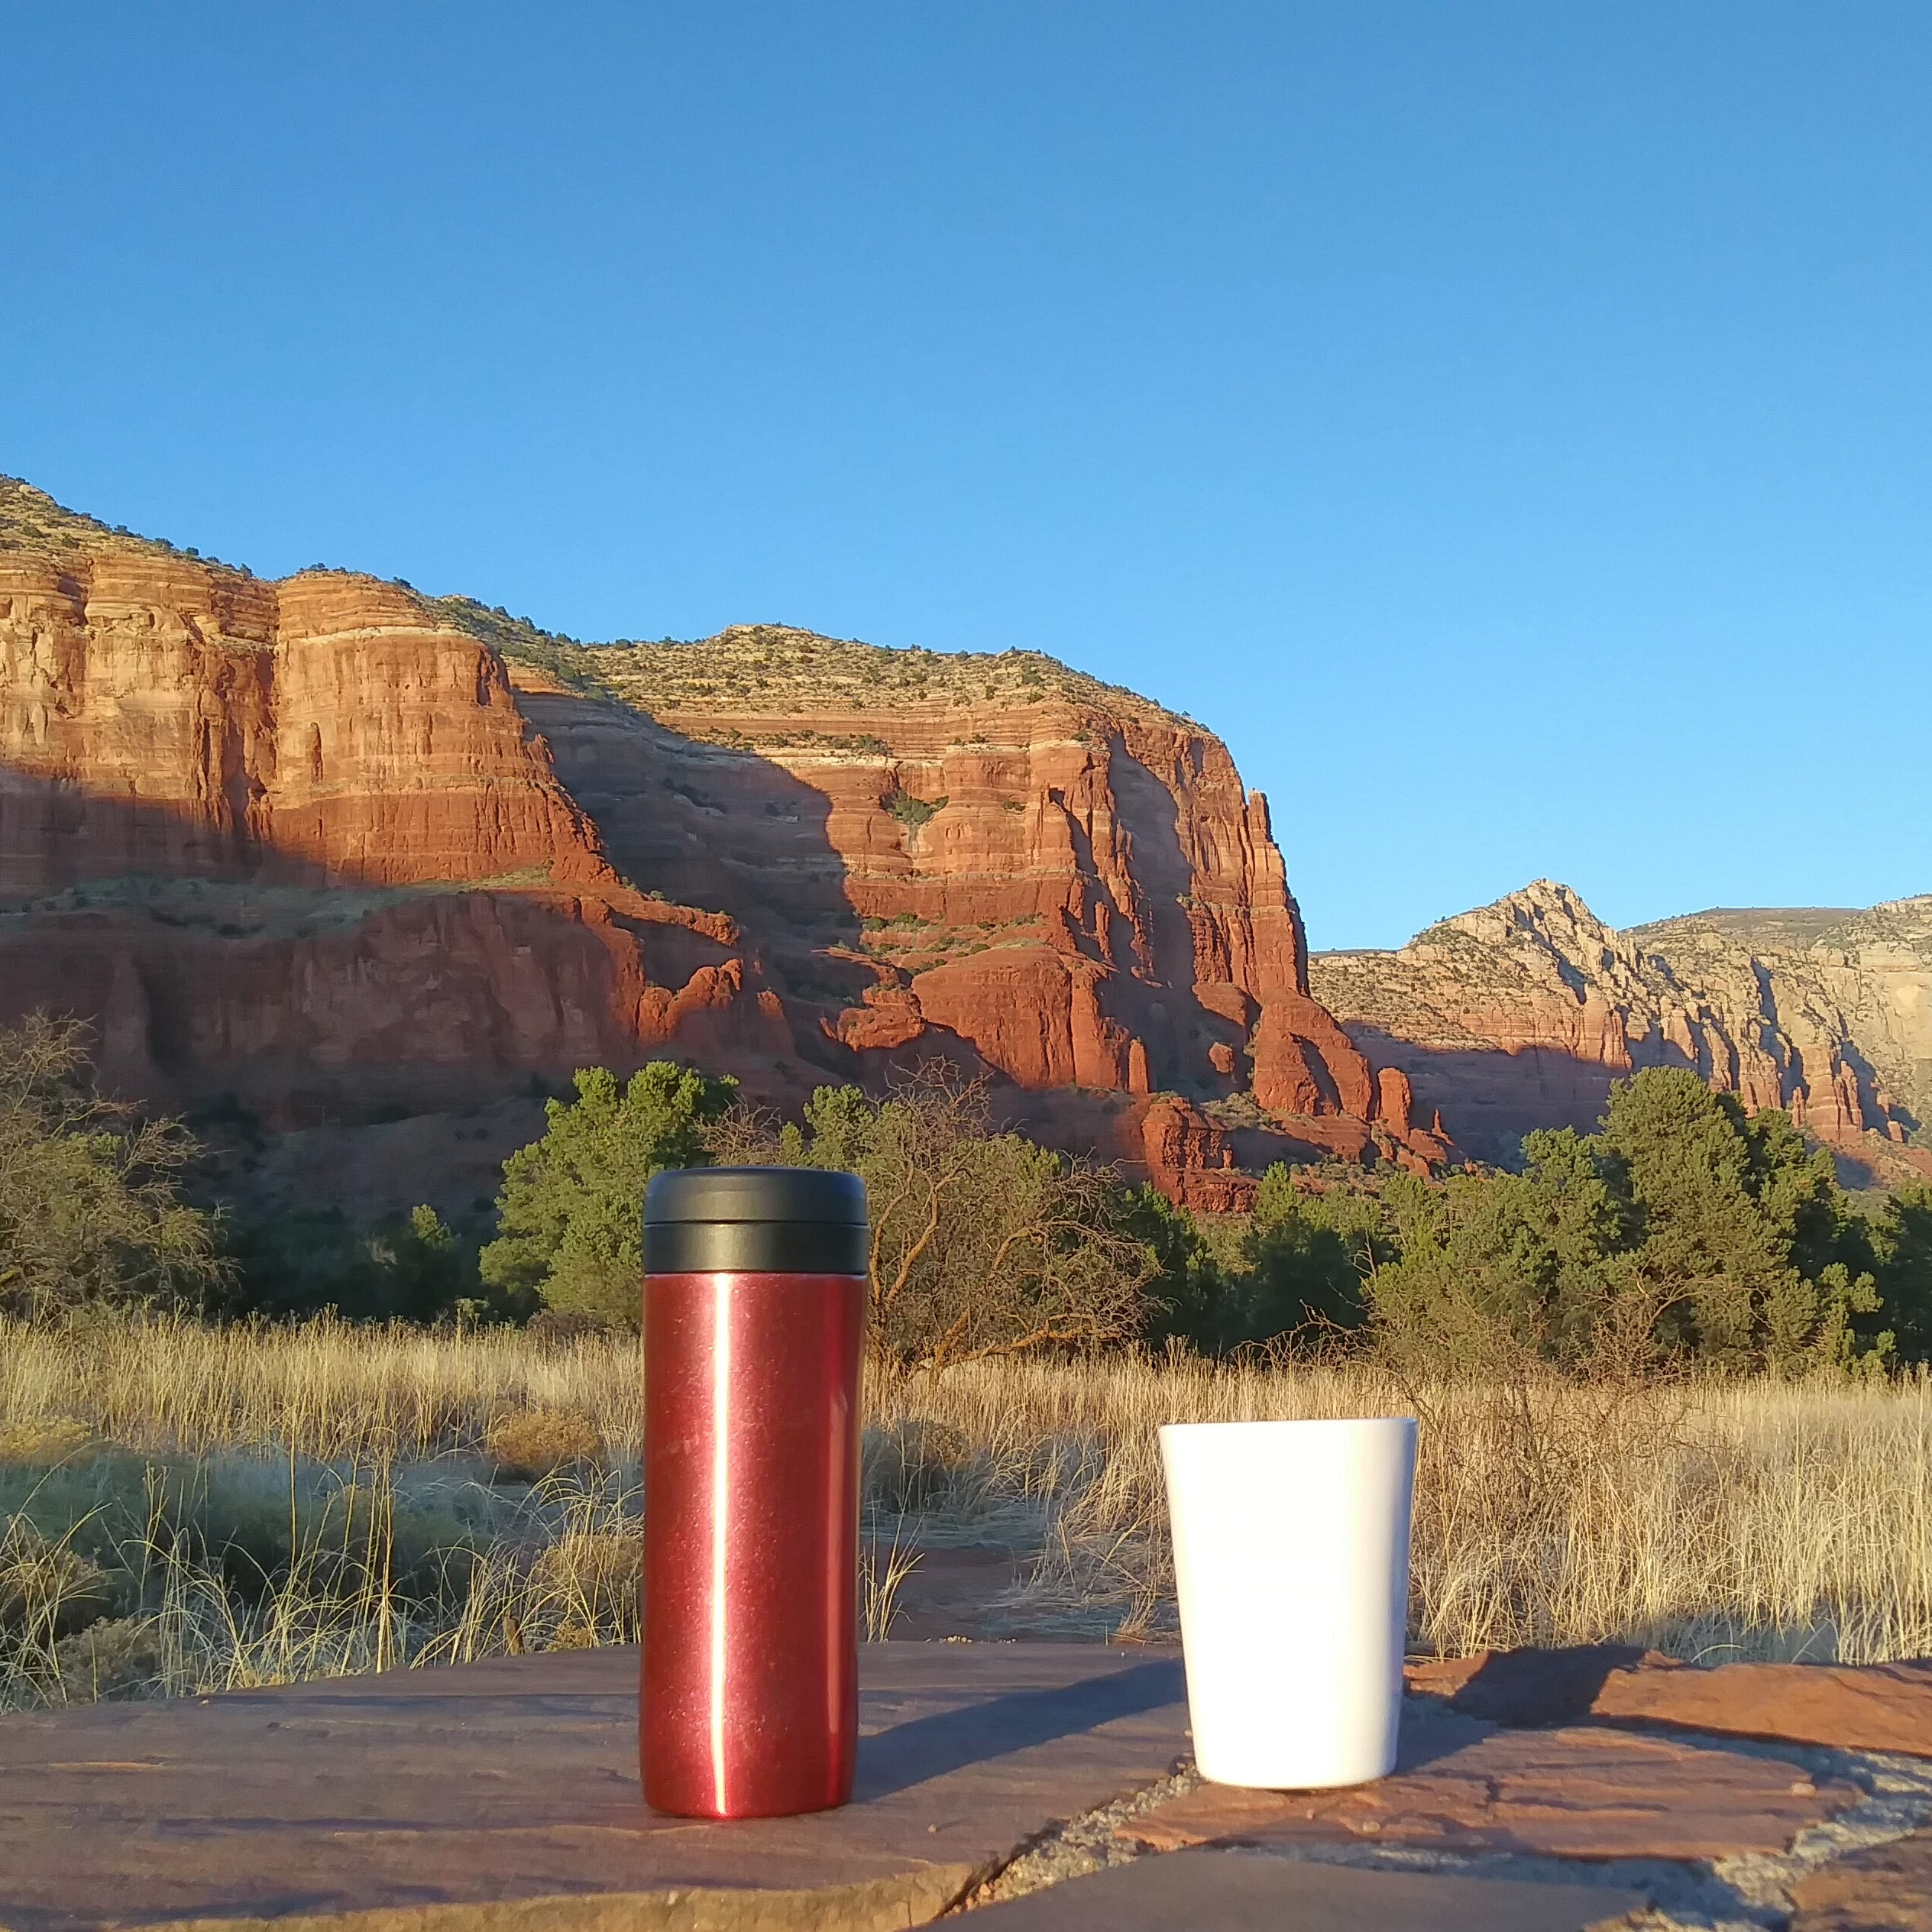 My Espro Travel Press and ThermaCup admire the scenery in Red Rock Country, south of Sedona, Arizona. From the cover of the 2019 Coffee Spot Calendar.